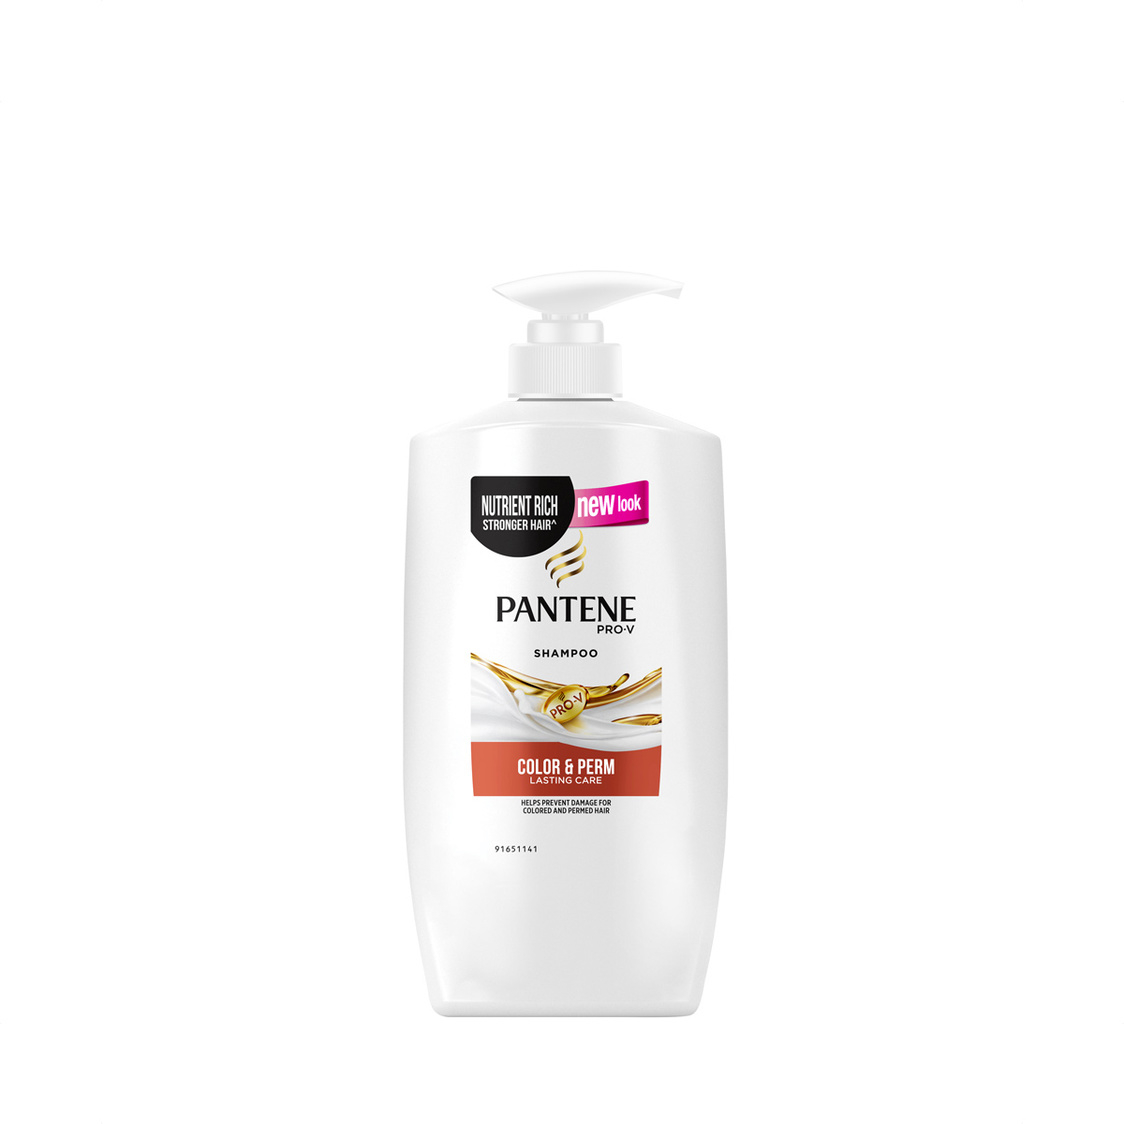 Color  Perm Lasting Care Shampoo